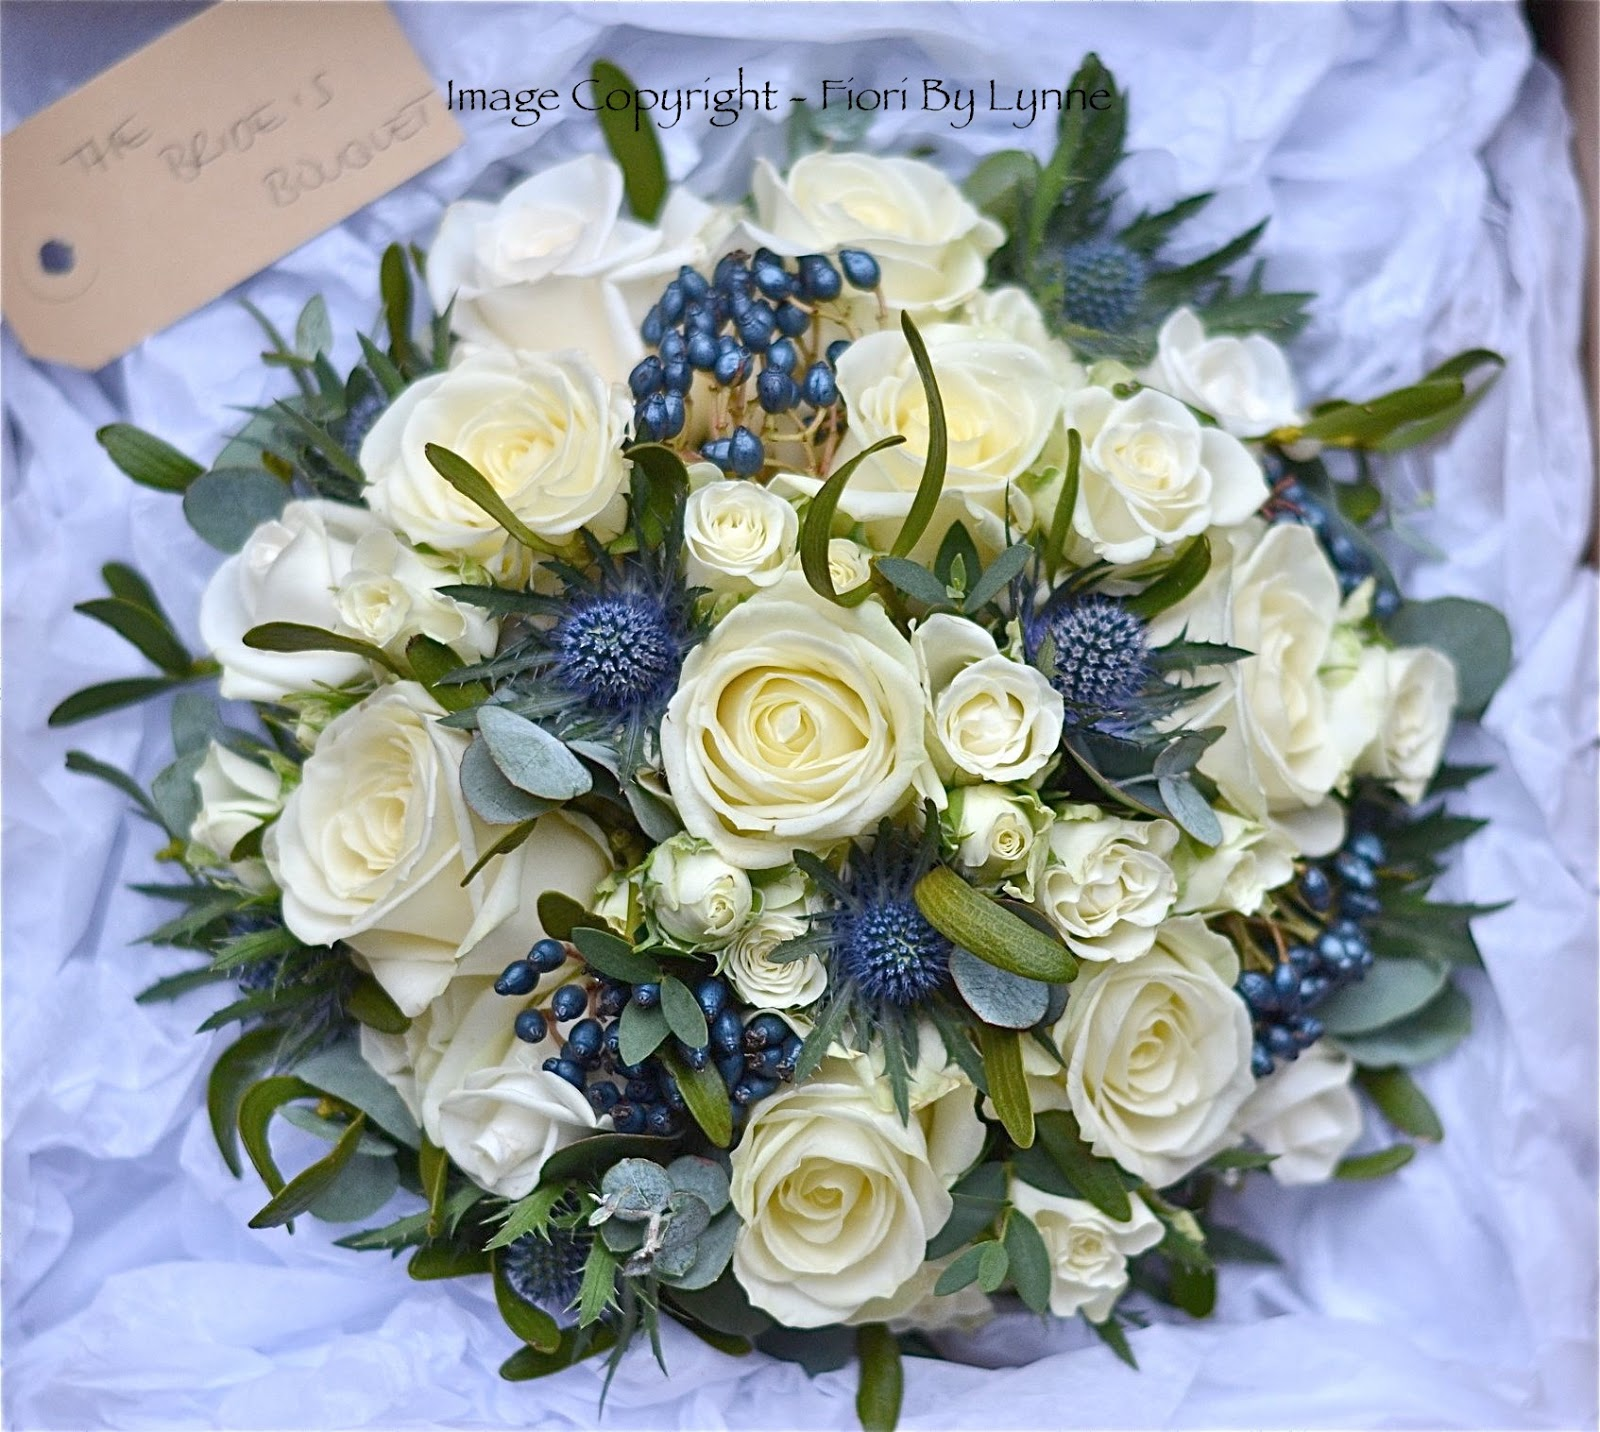 Wedding flowers blog laura 39 s christmas wedding flowers for Best flowers for wedding bouquet